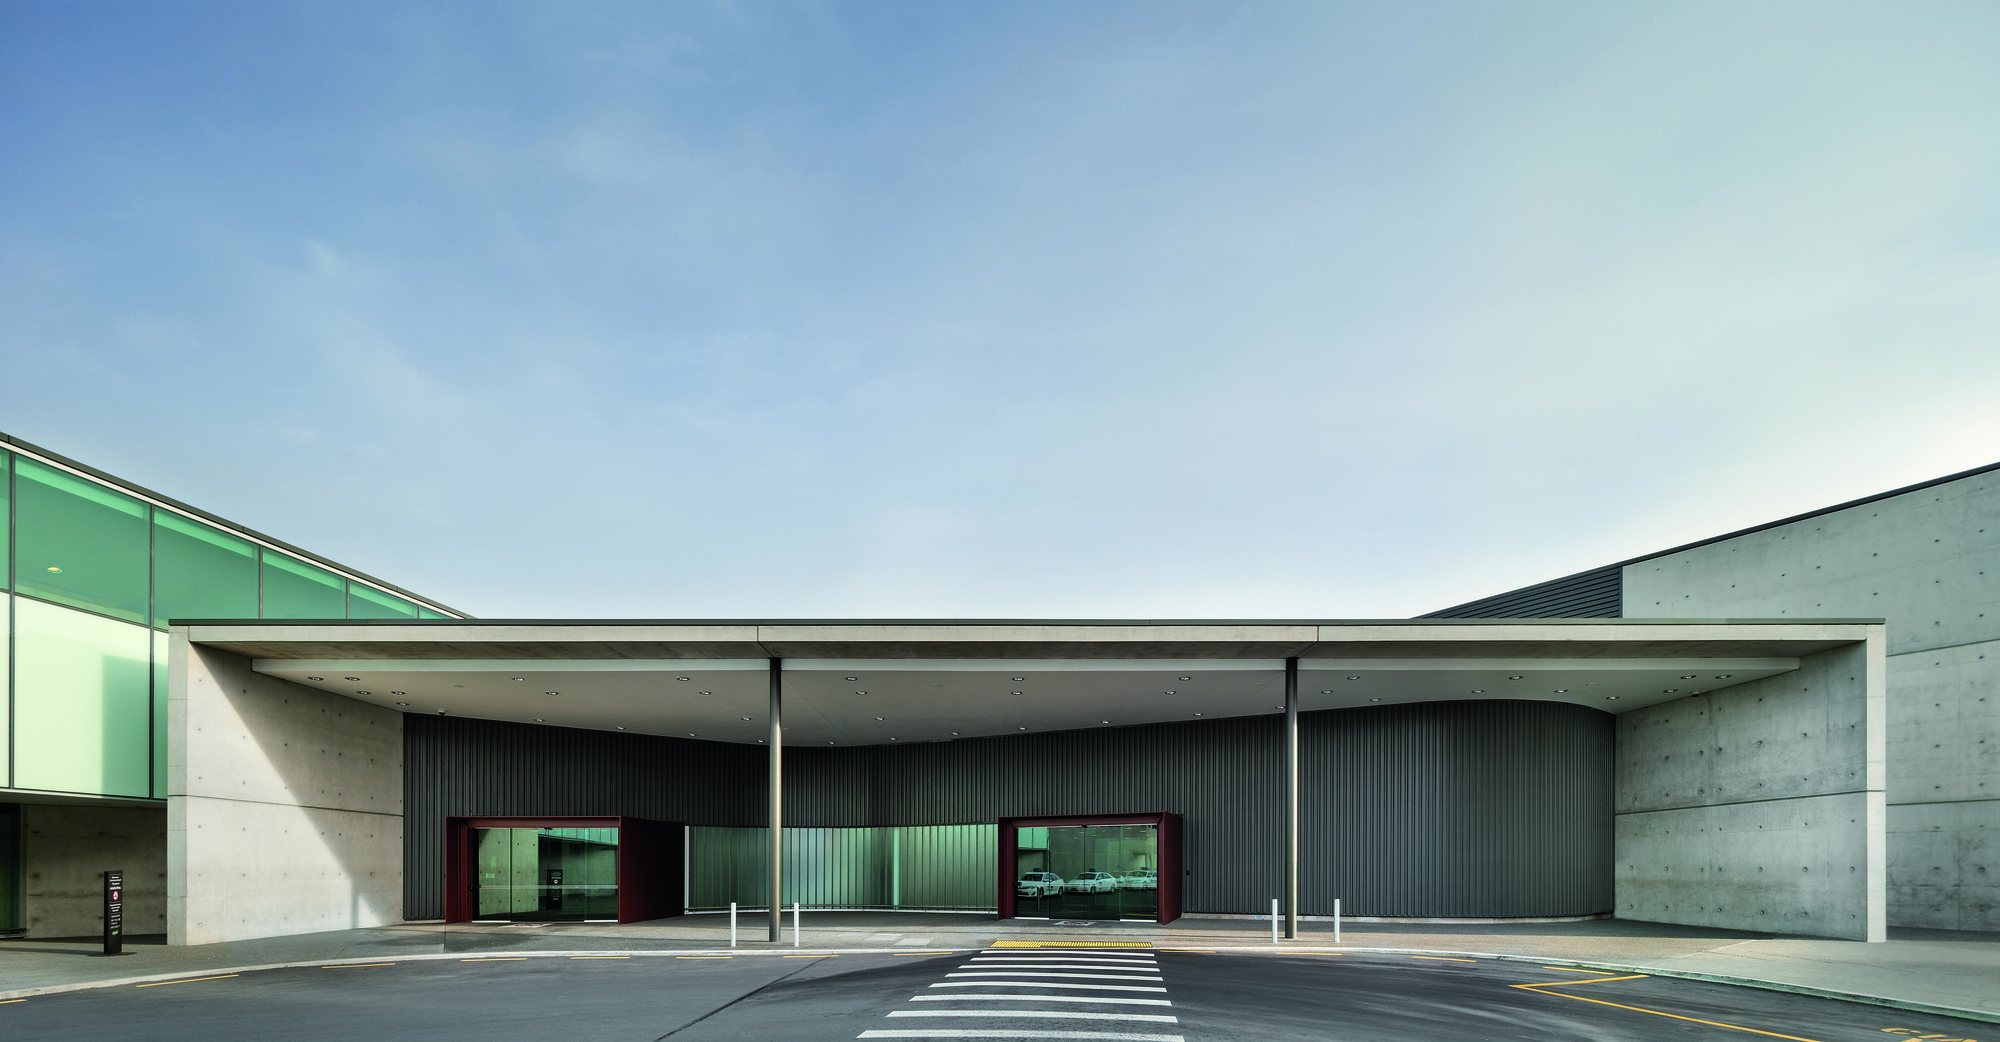 New zealand architecture awards 2014 winners announced for Award winning architects